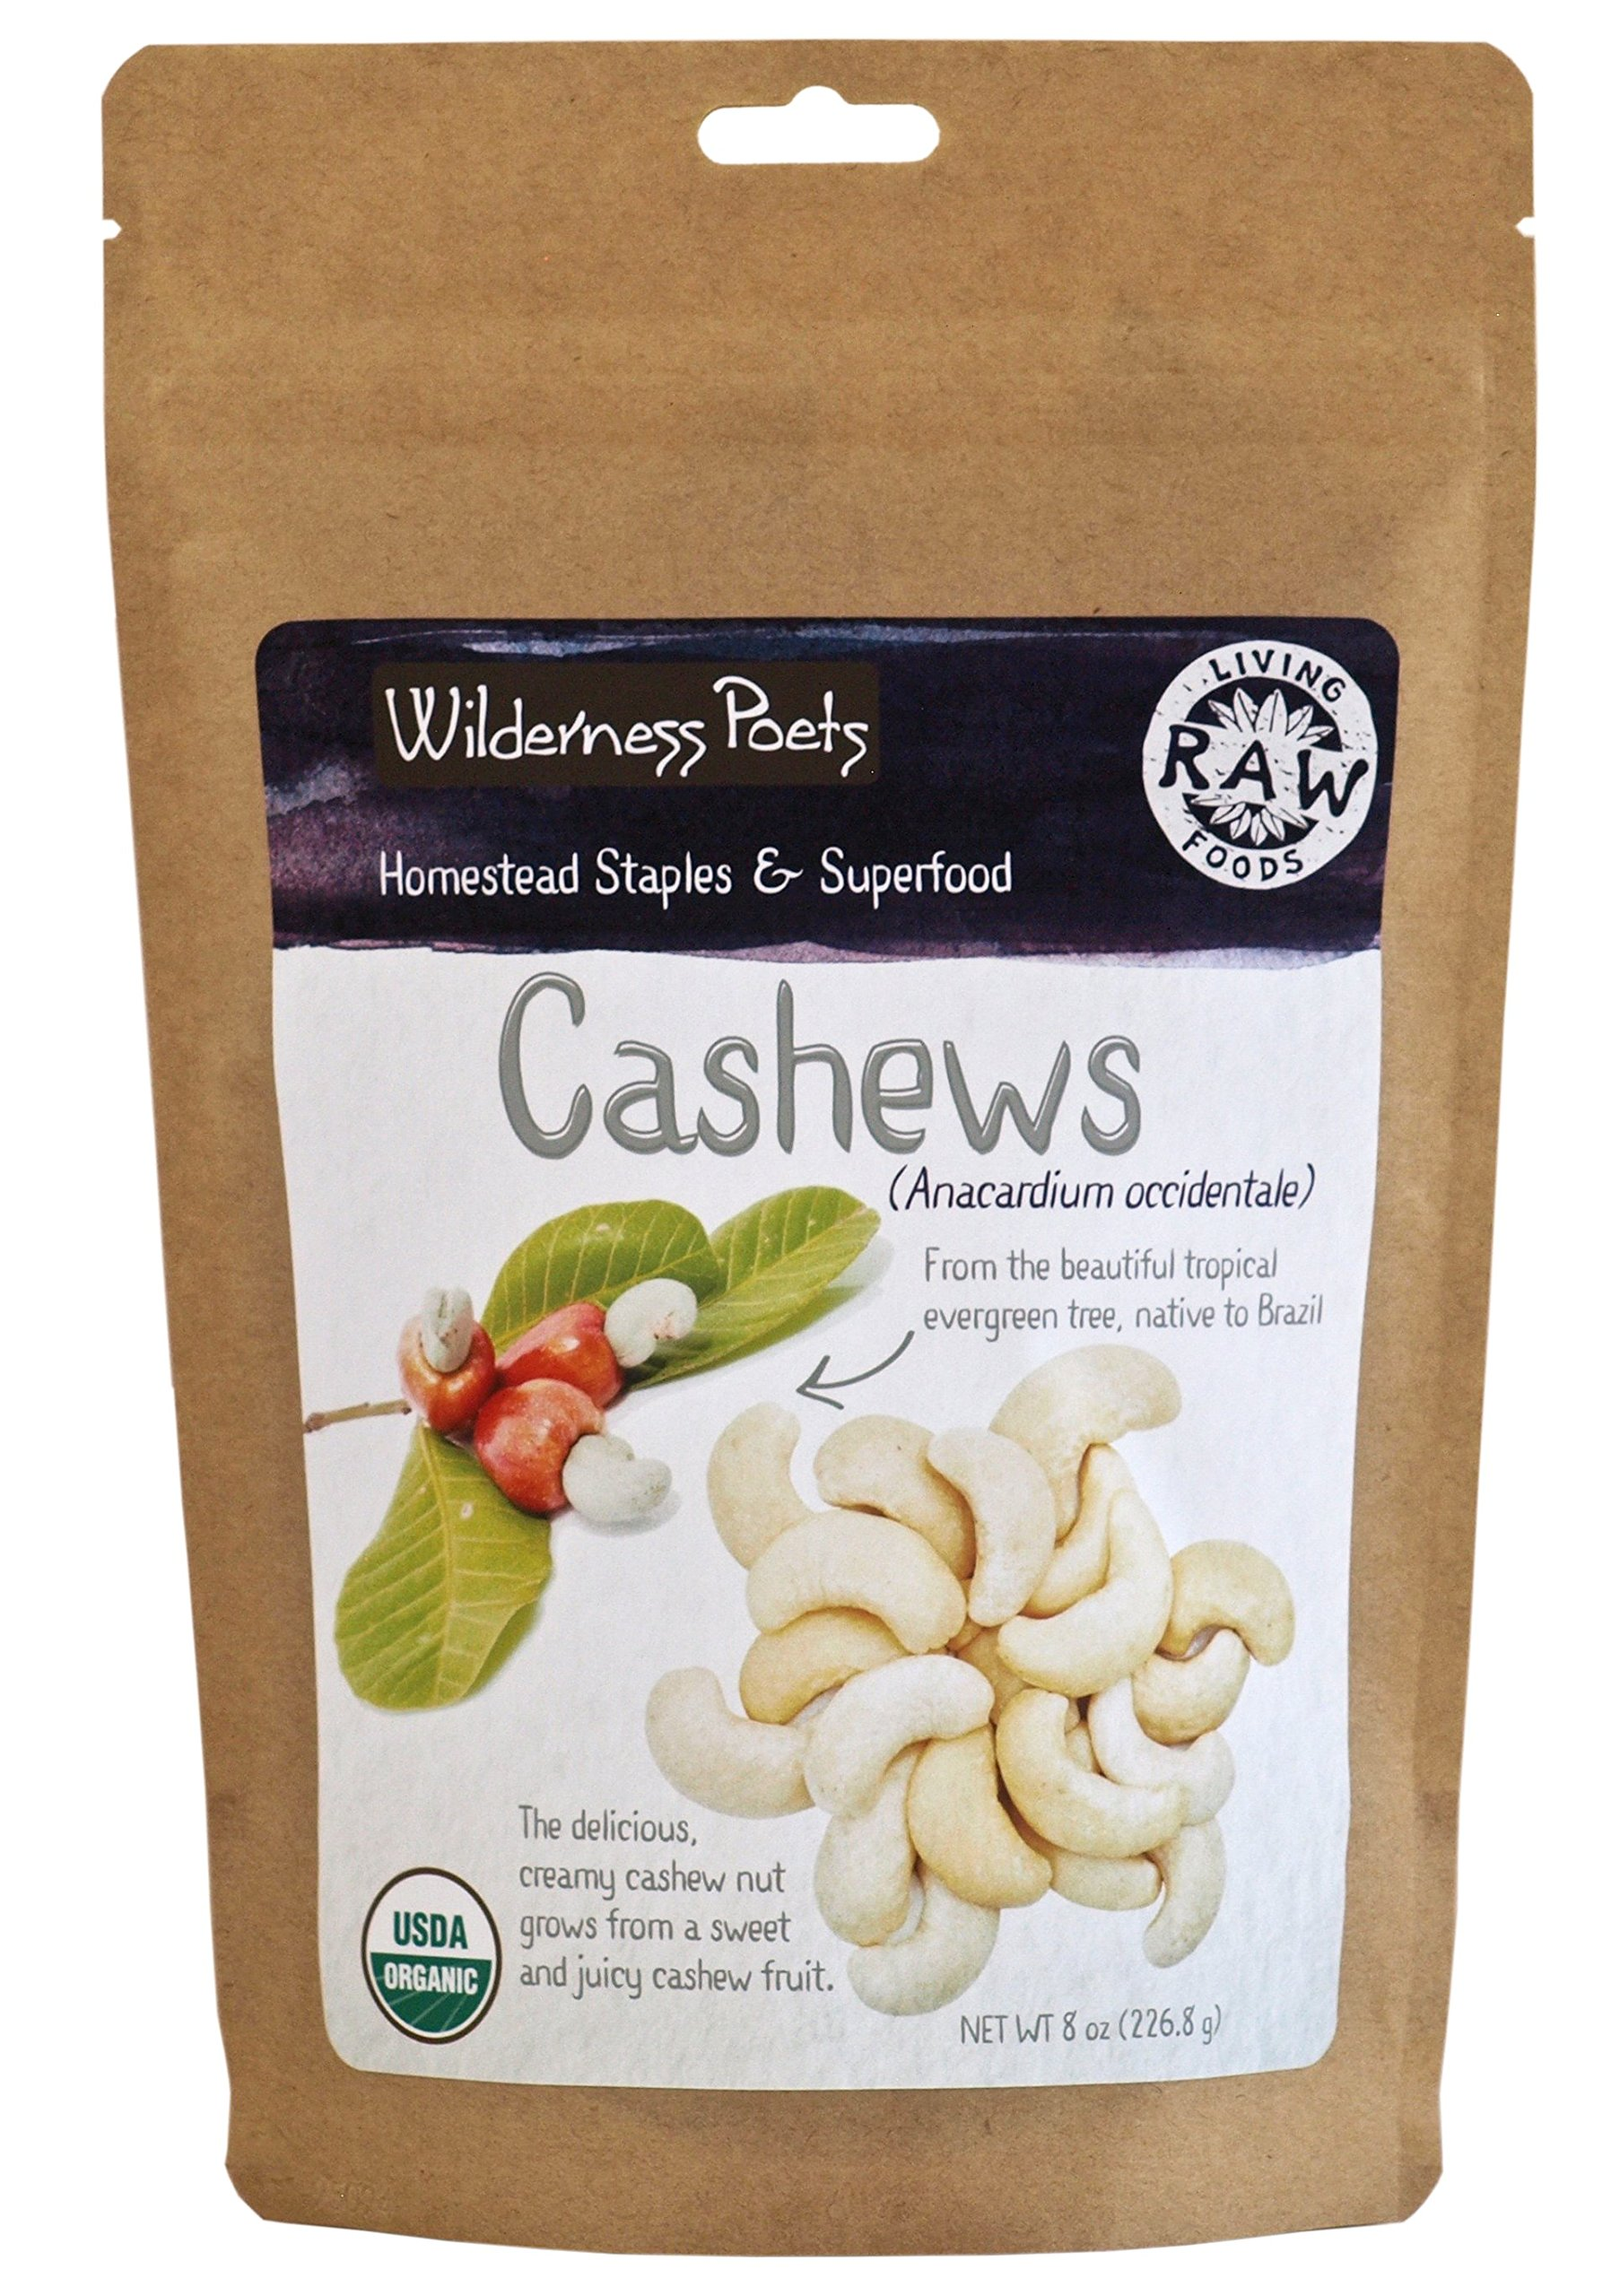 Wilderness Poets Cashews - Organic Raw Cashew Nuts, 8 Ounce (227 Grams)